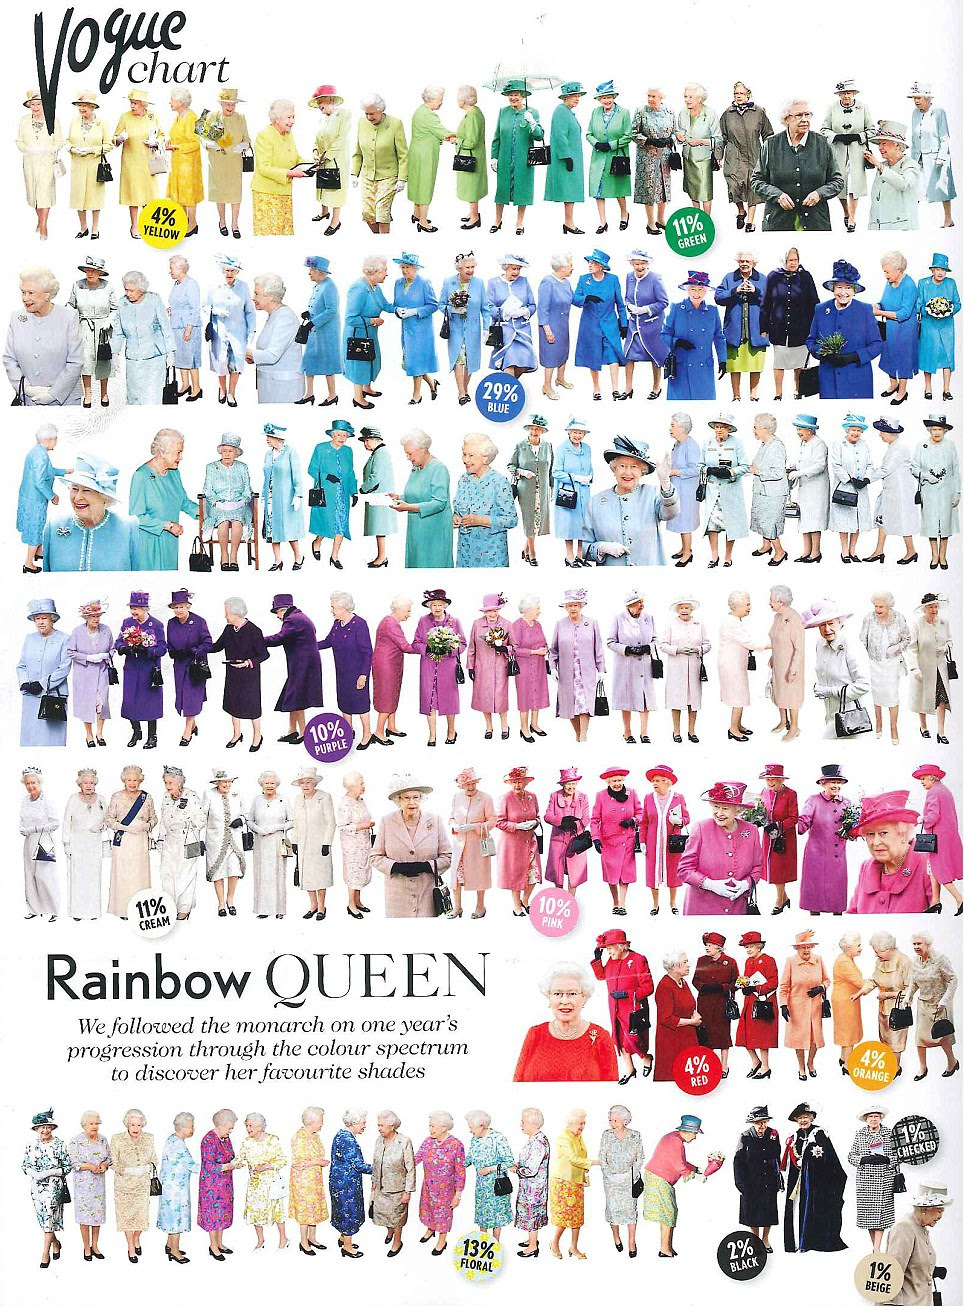 Queeny's colour coding game is strong